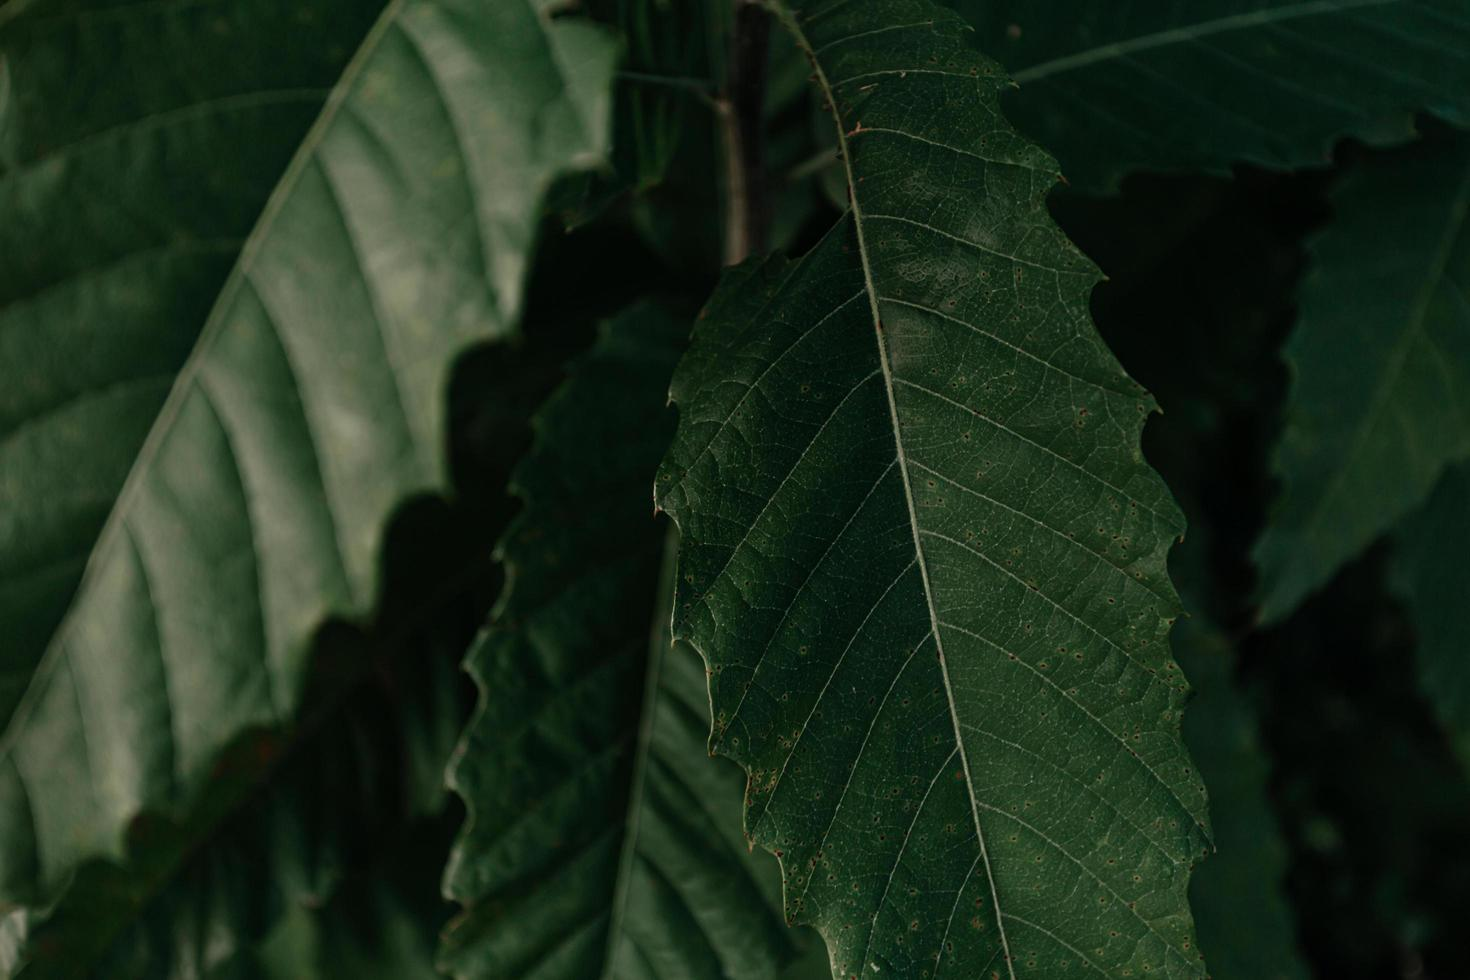 Close-up of leaves at night photo